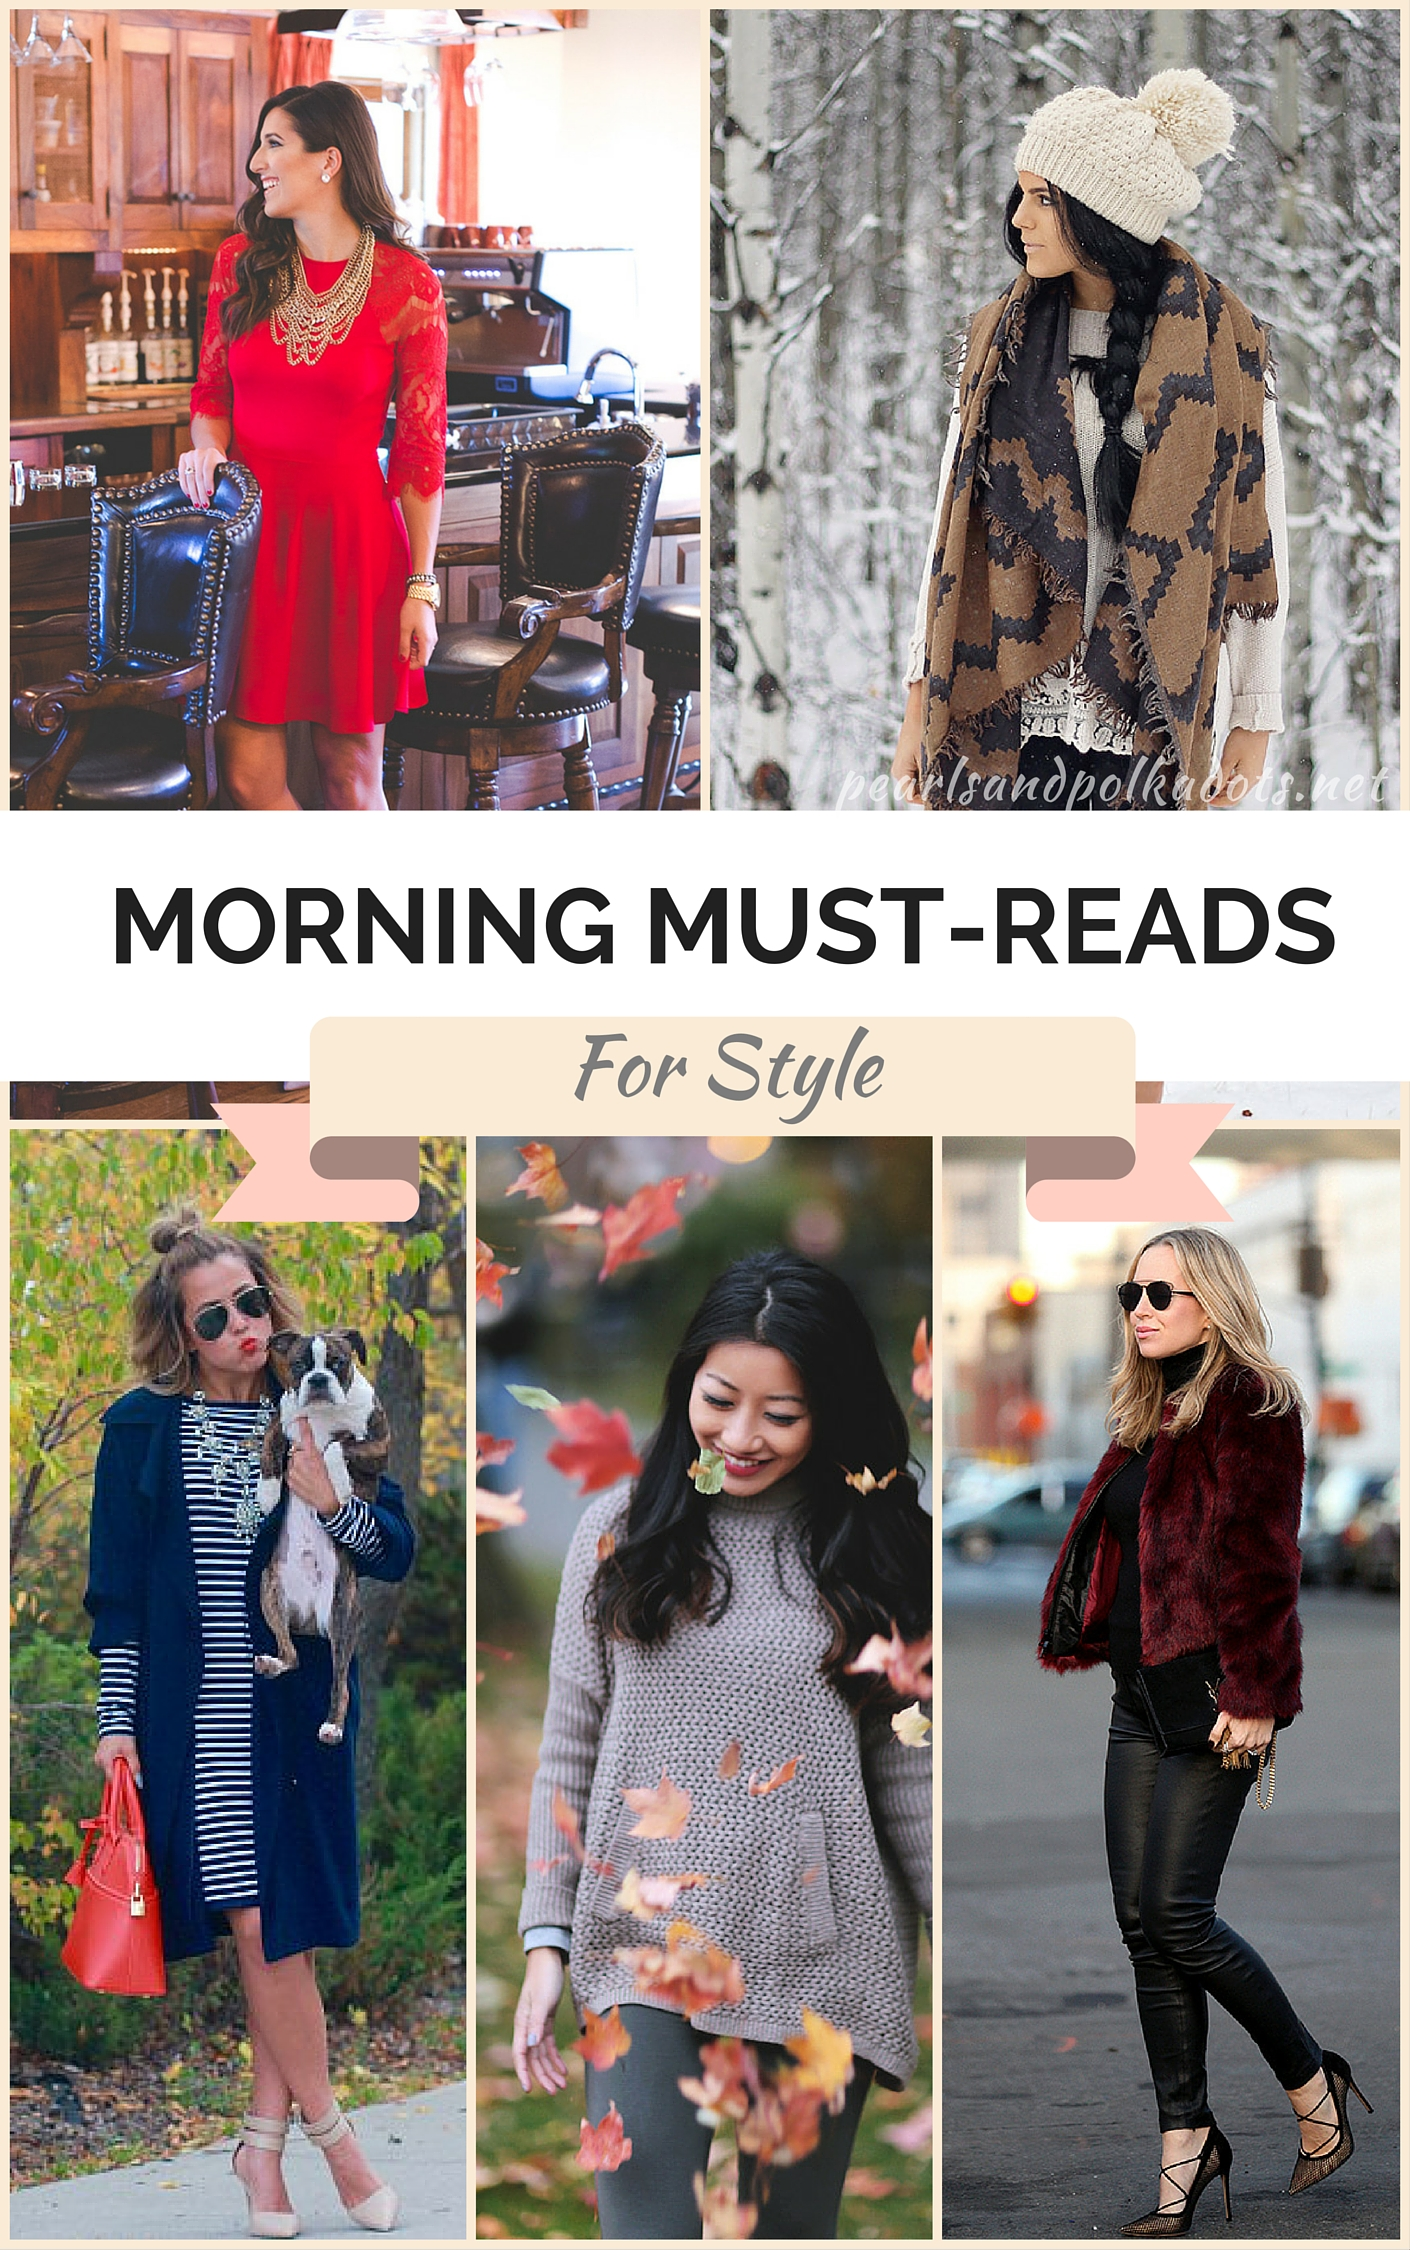 Morning Must-Reads: For Style